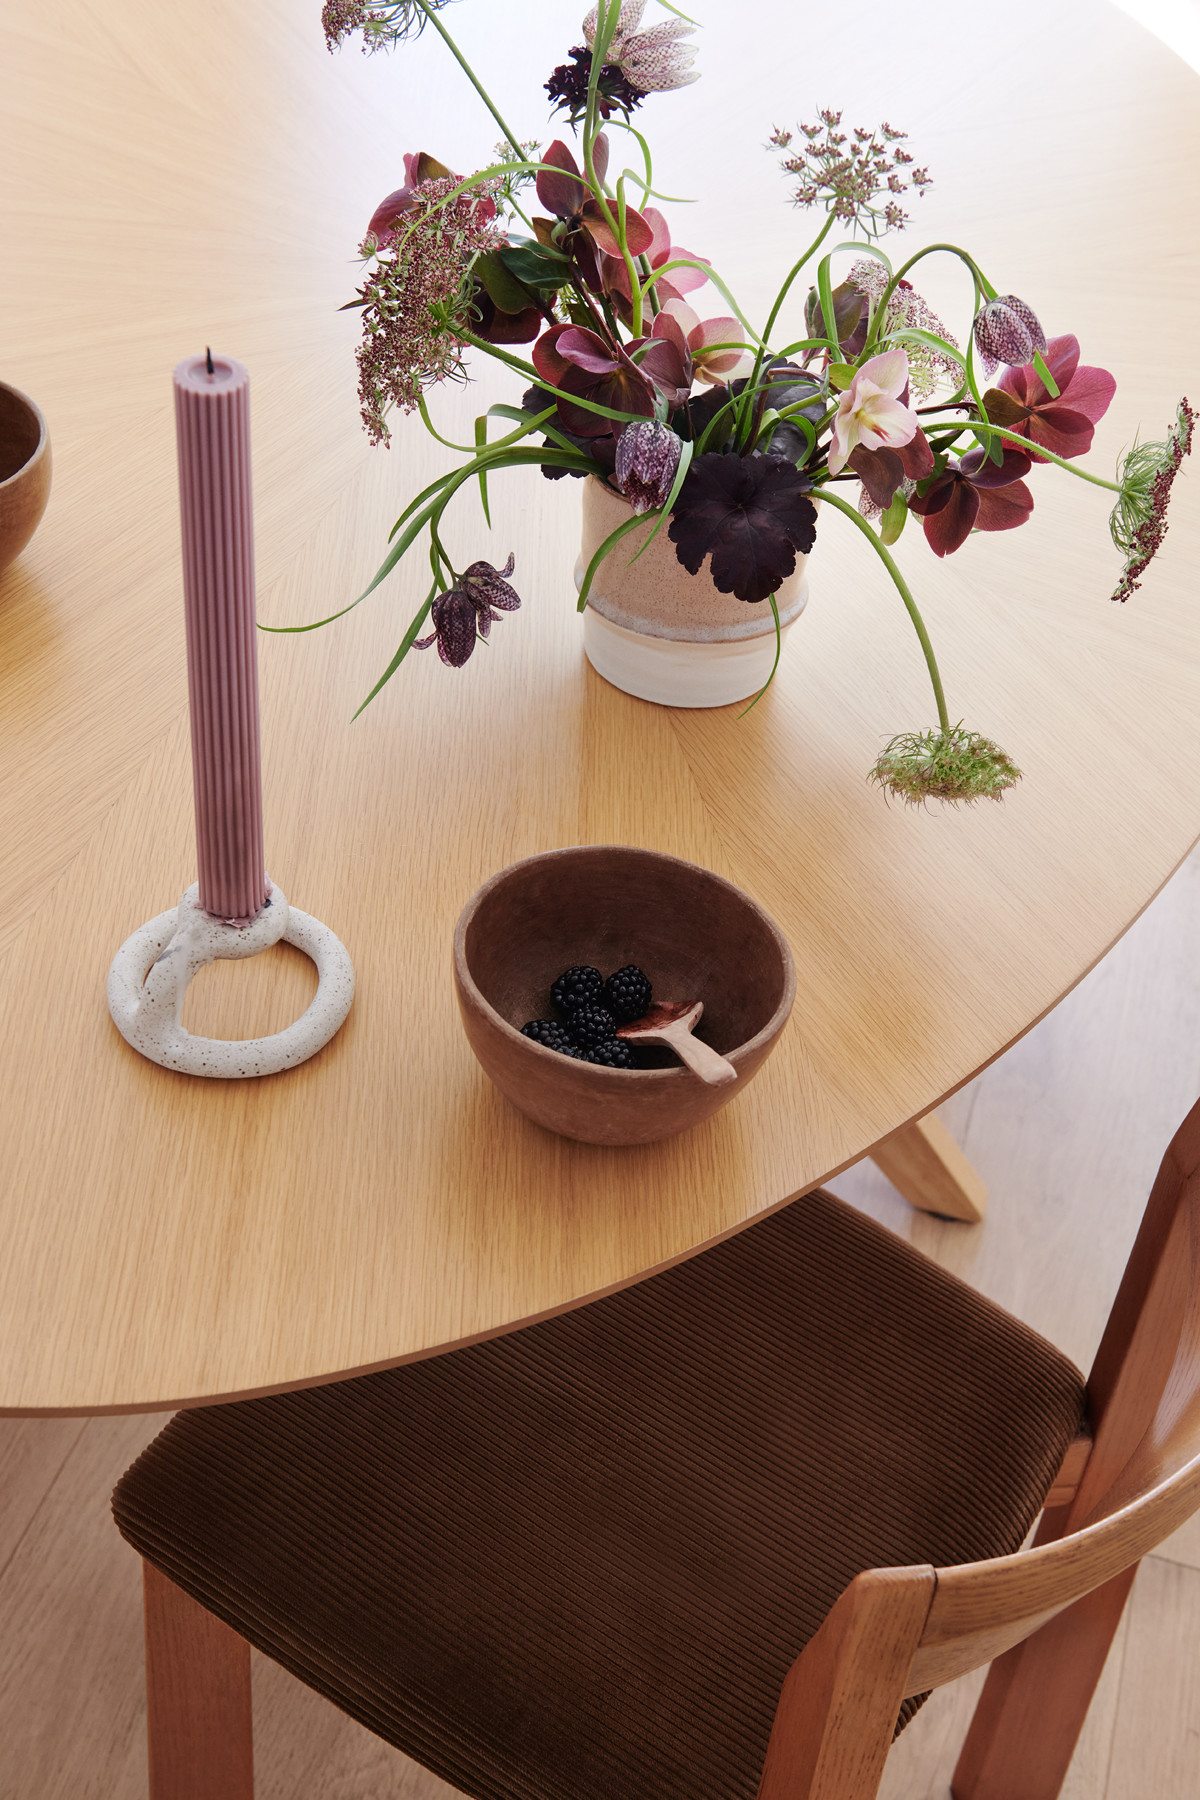 Craigslist Table And Credenza| Pink Paloma Arrangement|Virginia Sin Candle Holder| Mexican Bowl.